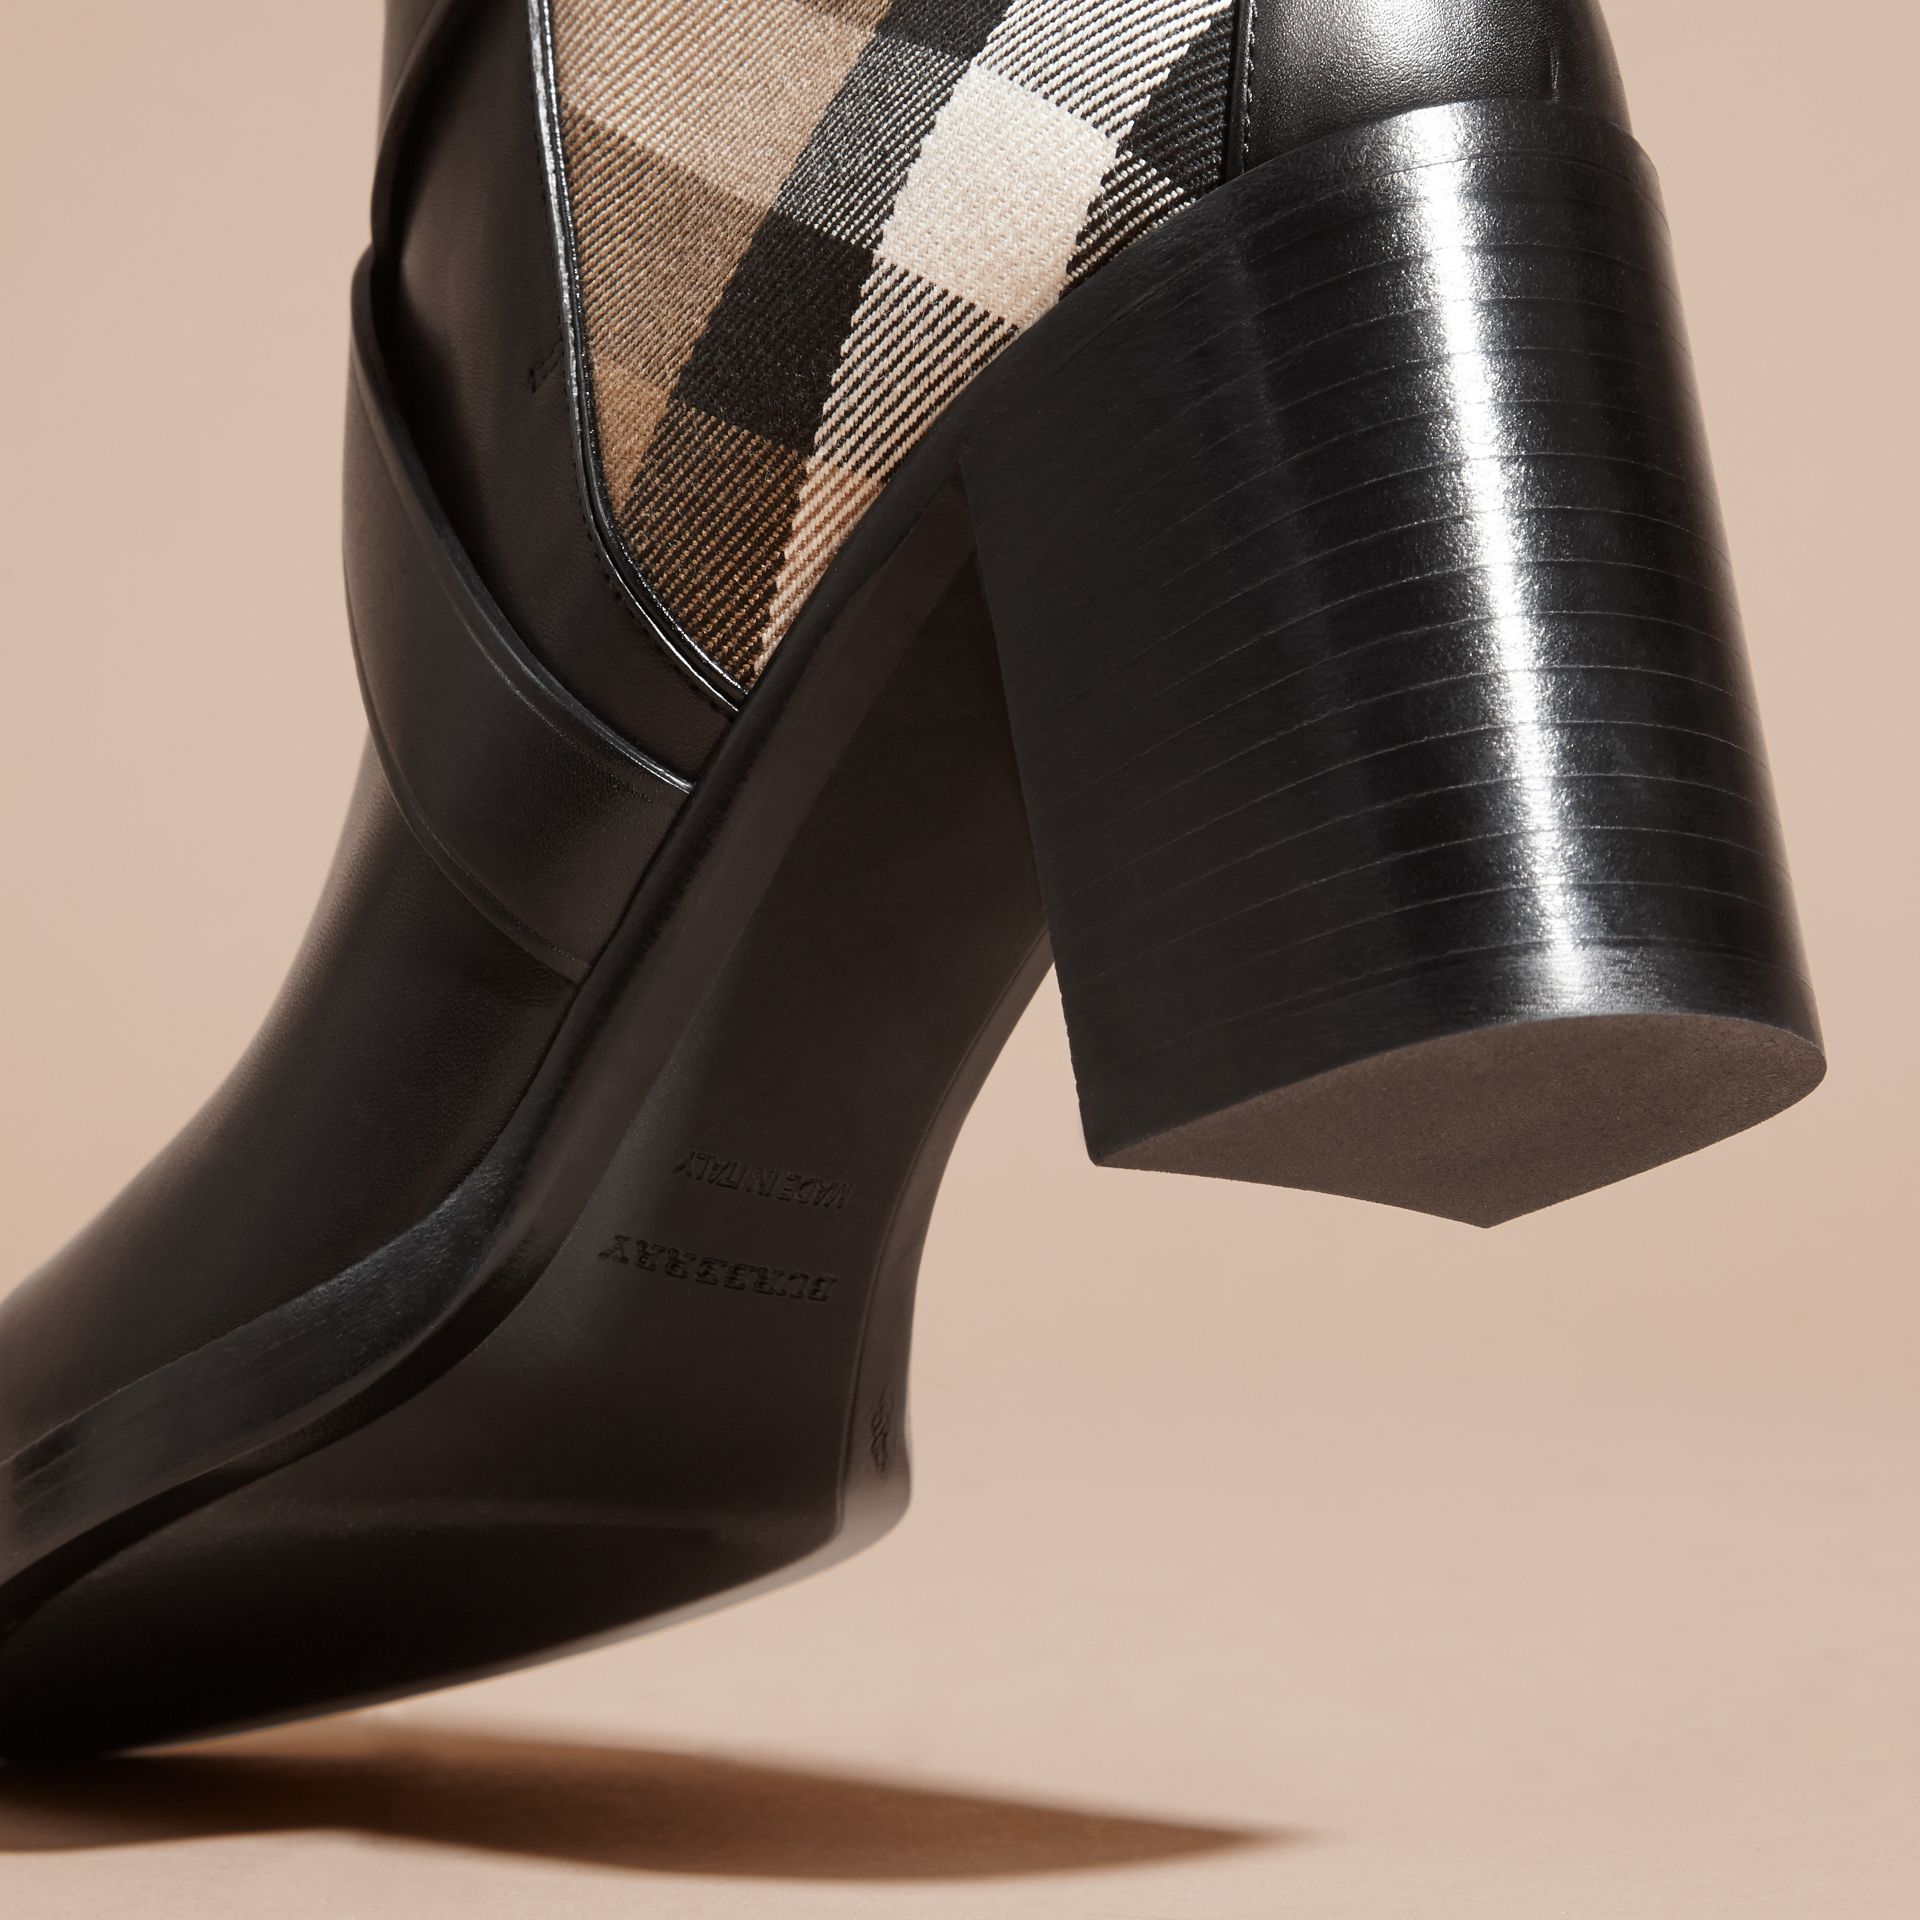 Bottines en cuir et coton House check (Noir) - Femme | Burberry Canada - photo de la galerie 4